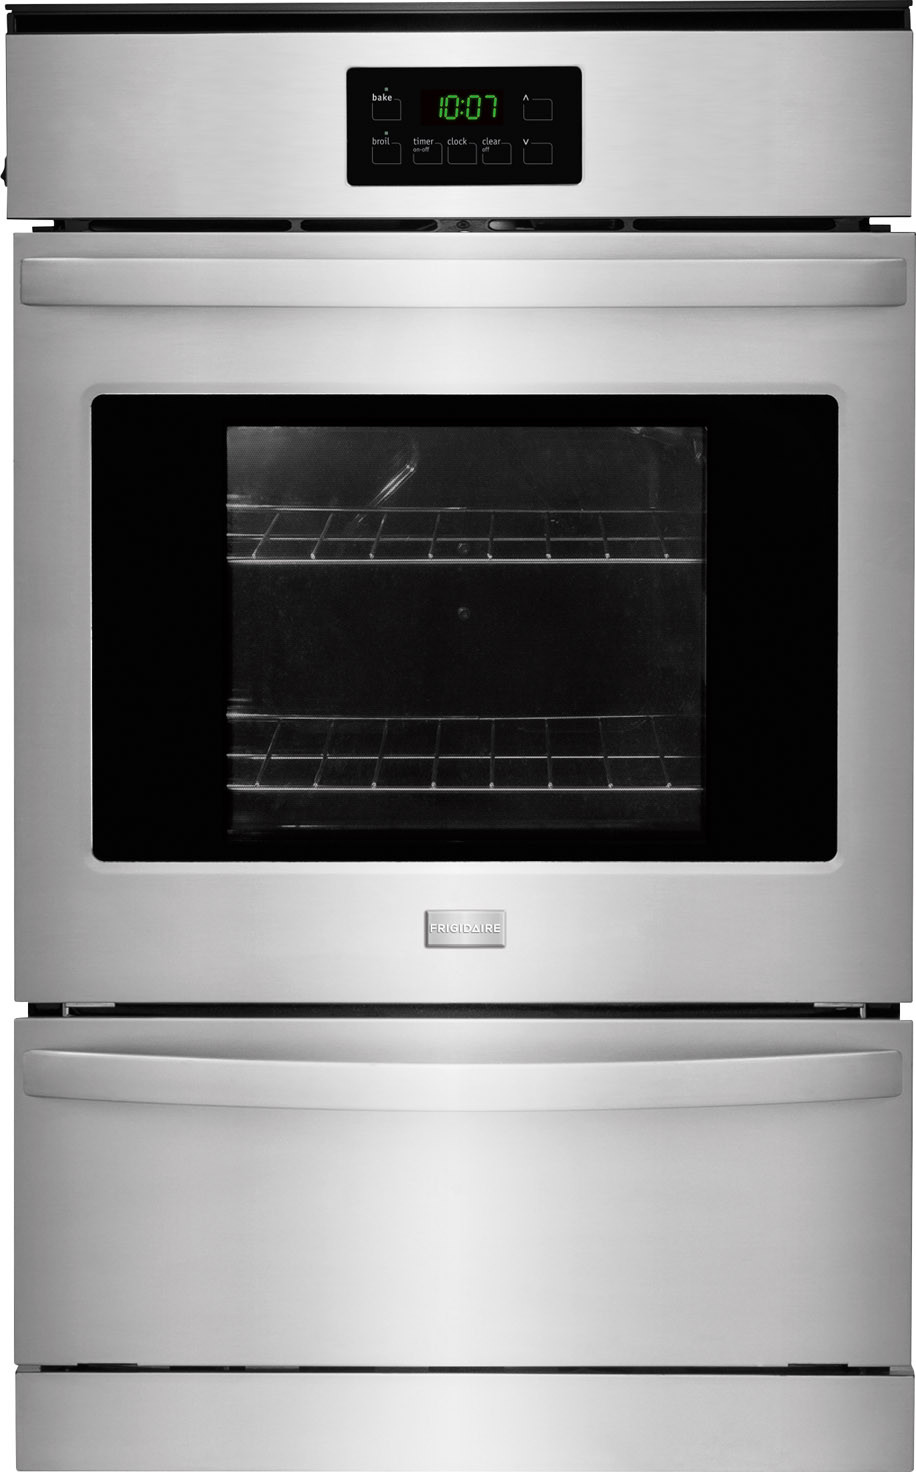 24 inch built in oven microwave combo - 24 Inch Built In Oven Microwave Combo 12